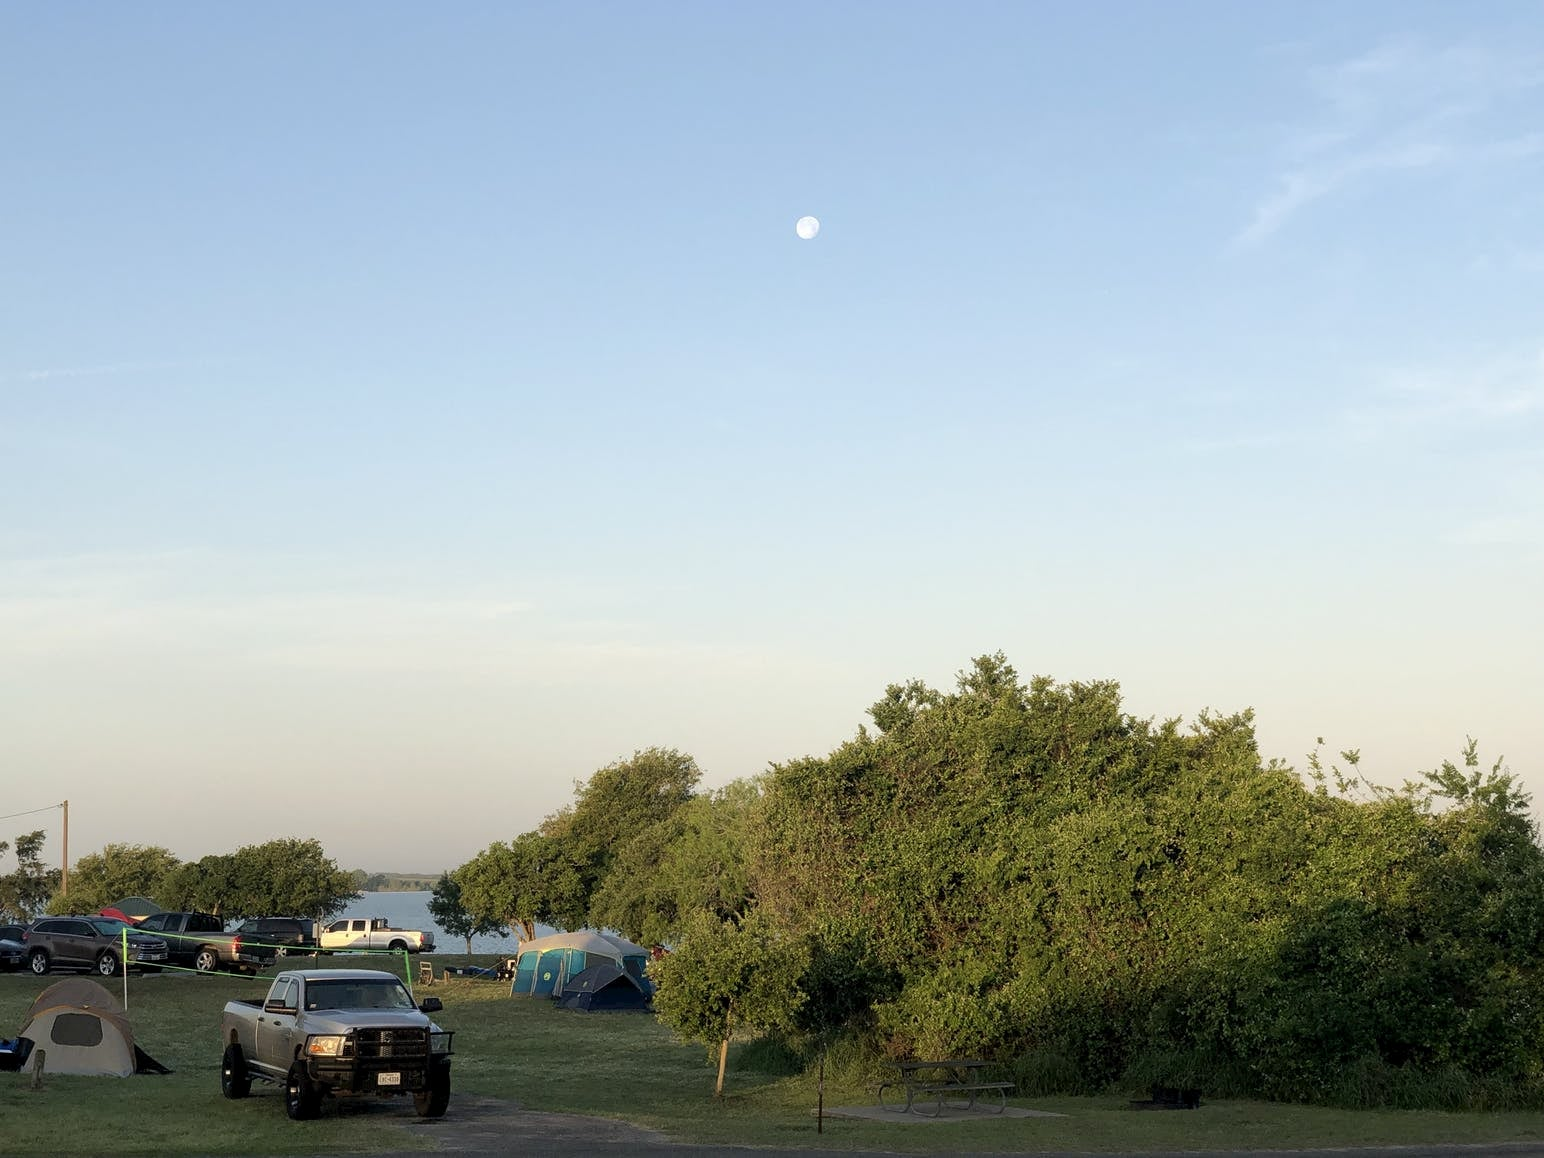 Cars parked beside tents at campground under a full moon.